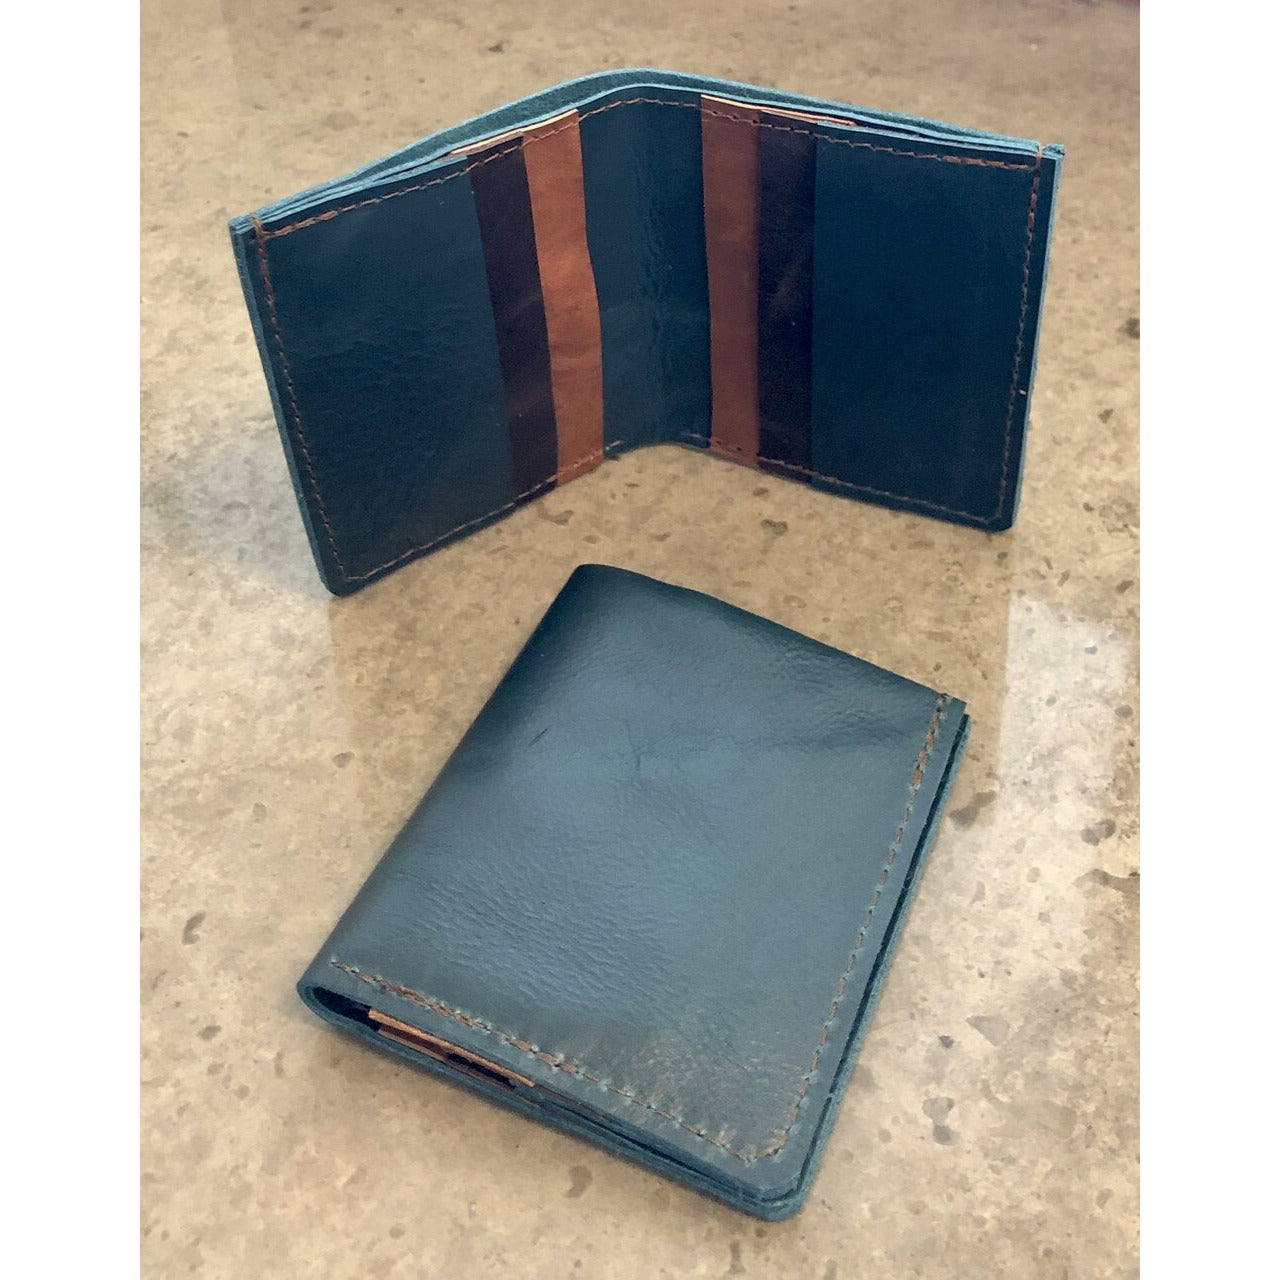 6 Pocket Leather Billfold in shiny teal green and brown